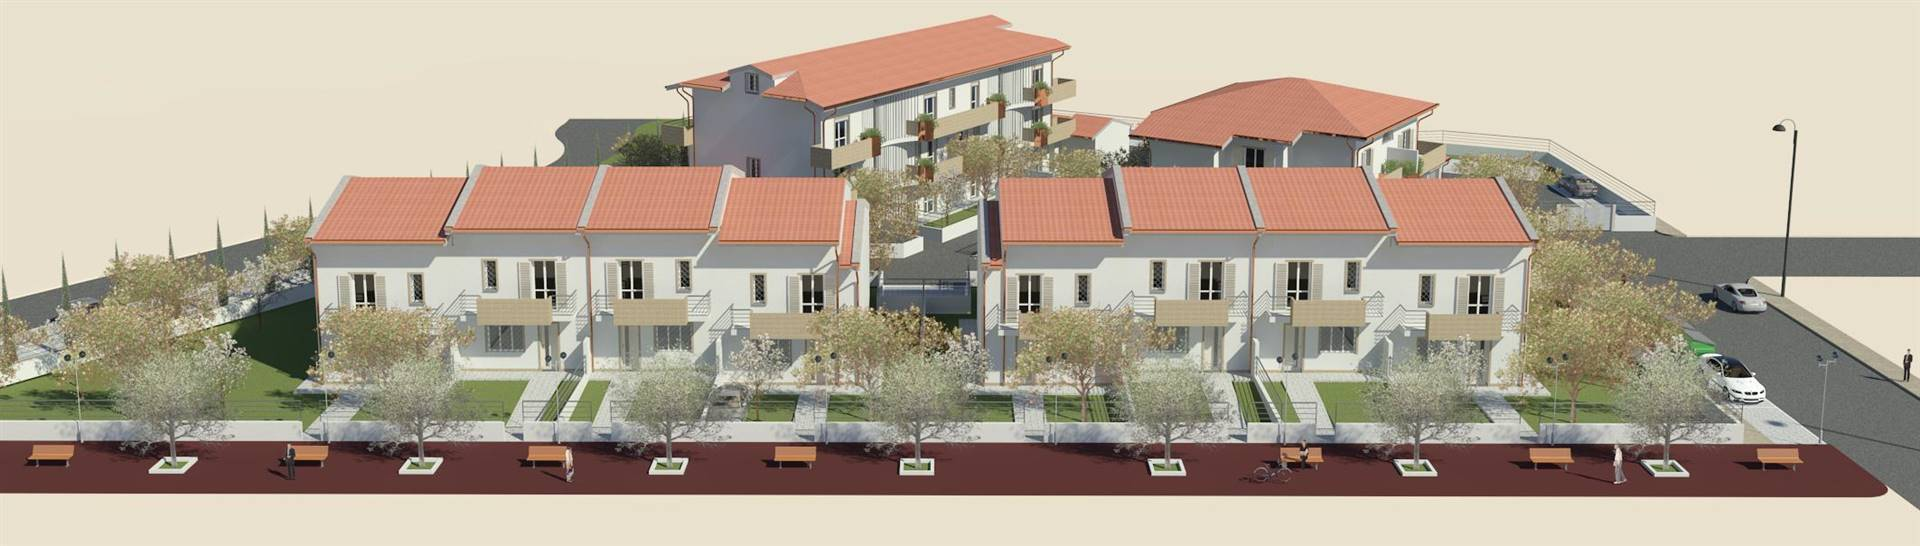 CAMPI BISENZIO, Apartment for sale of 185 Sq. mt., New construction, Heating Individual heating system, Energetic class: A+, placed at Ground,